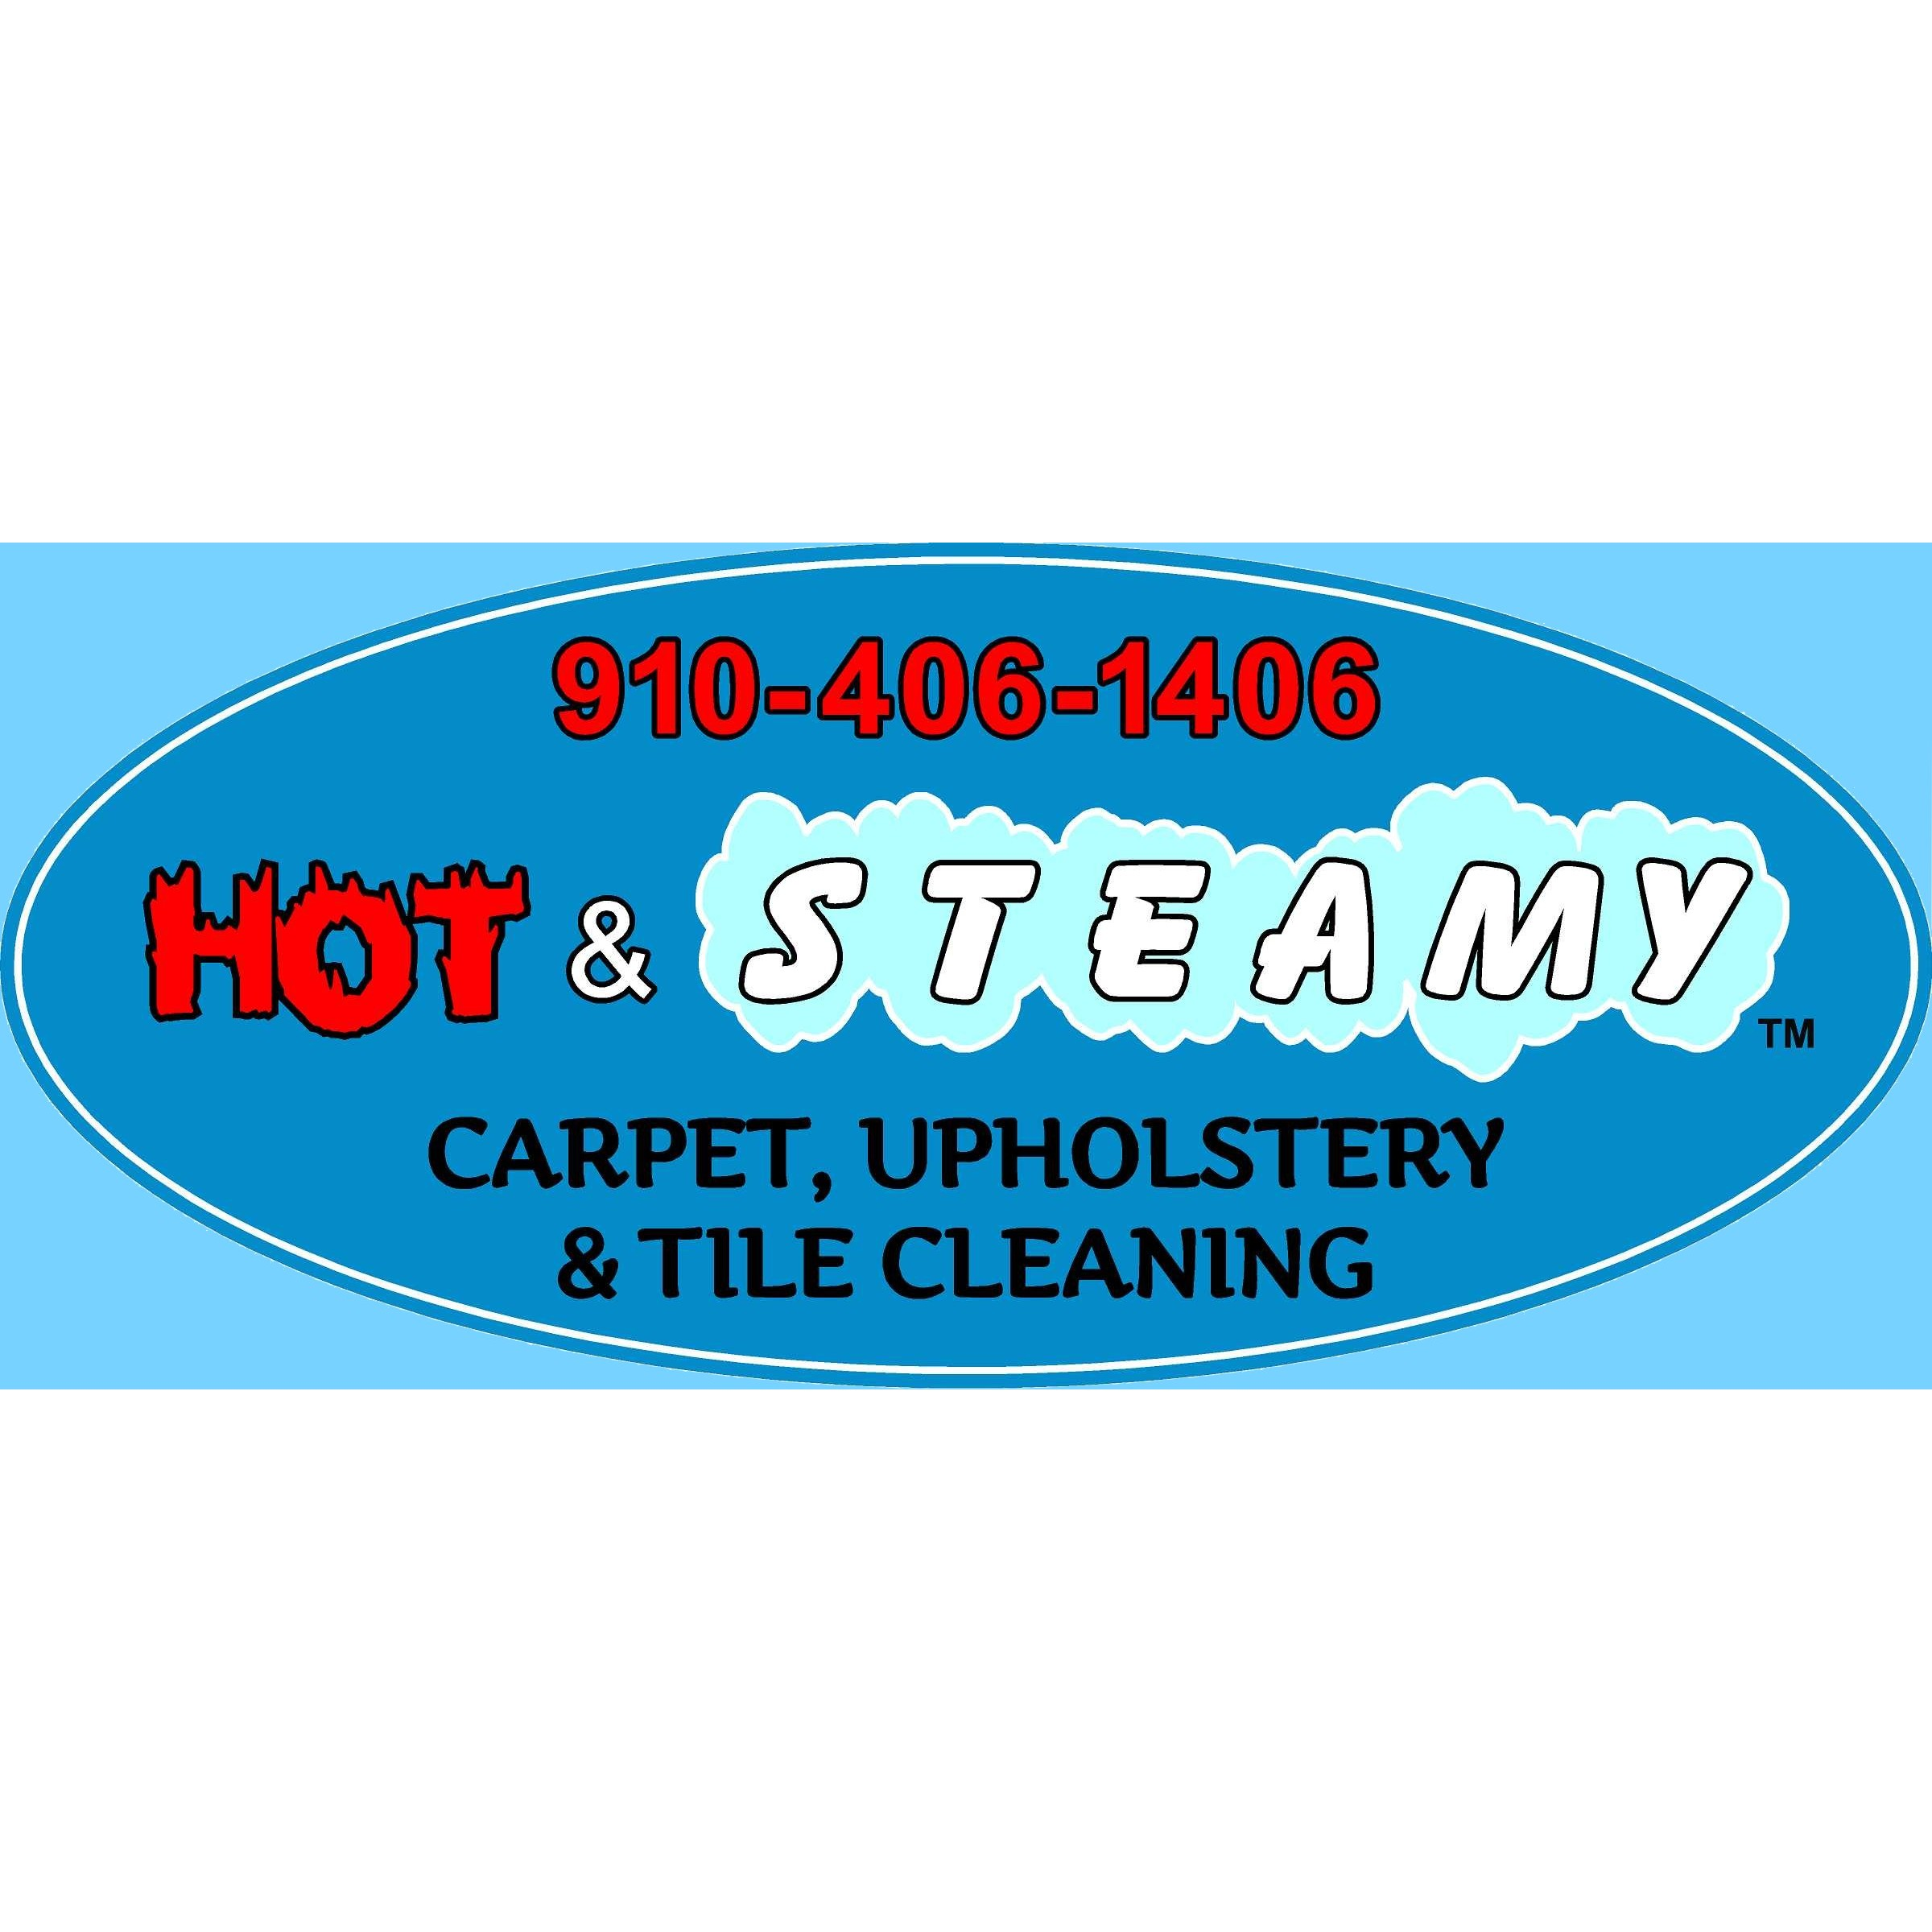 Hot & Steamy Carpet, Upholstery & Tile Cleaning